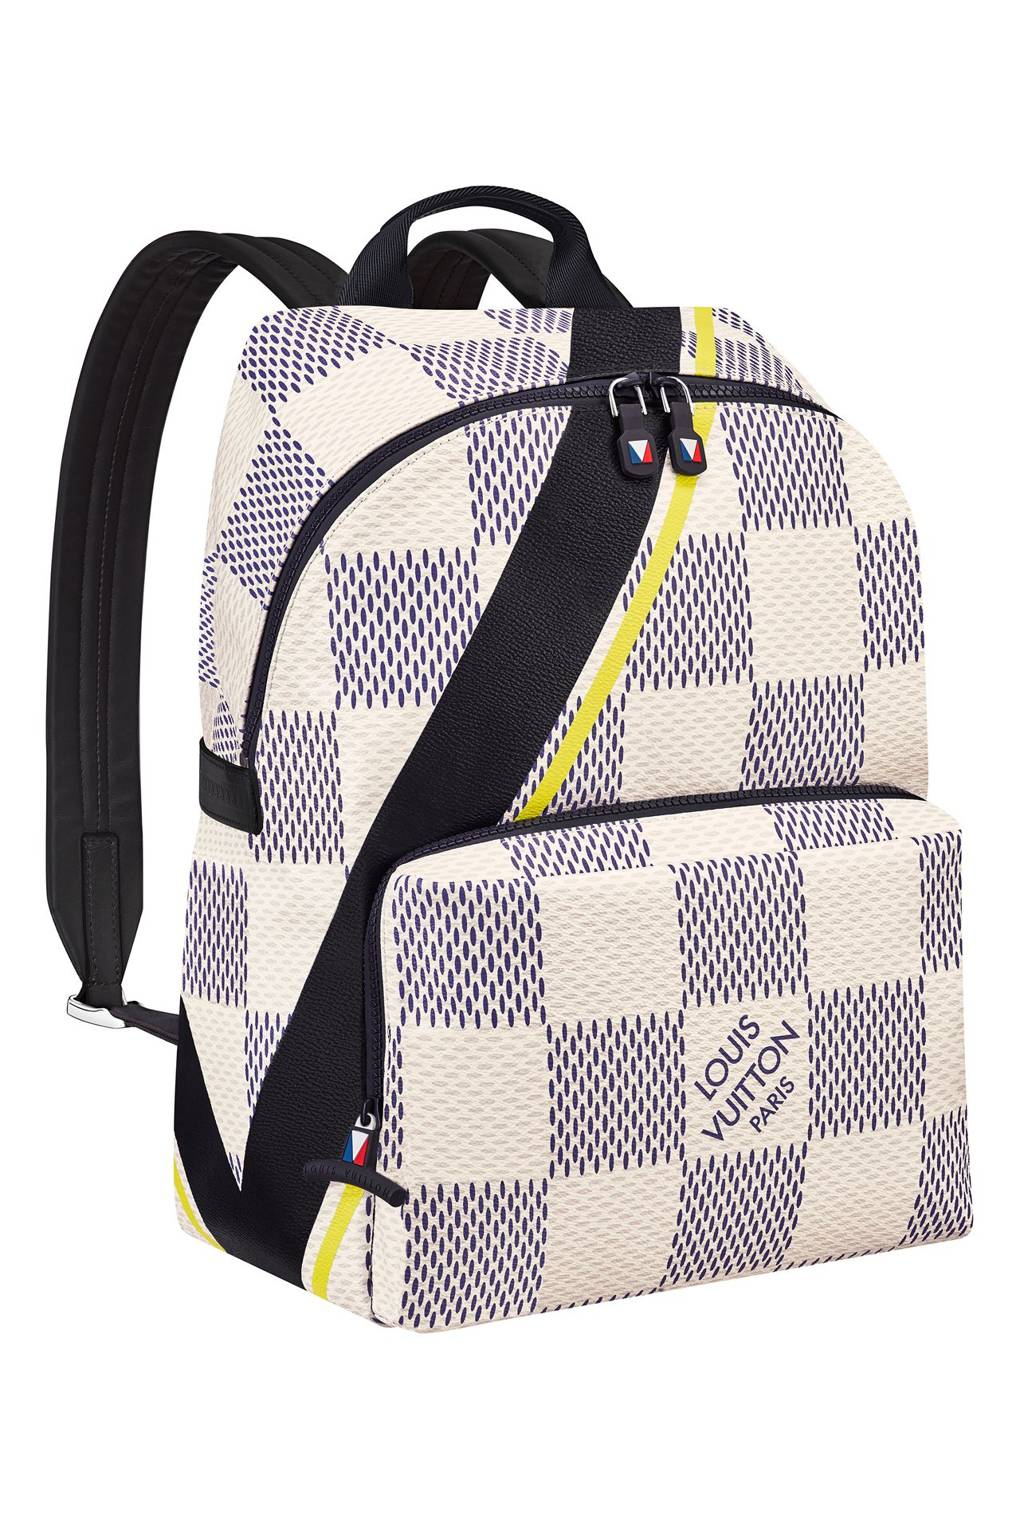 d0a6cecf5dd9 Louis Vuitton America s Cup collection